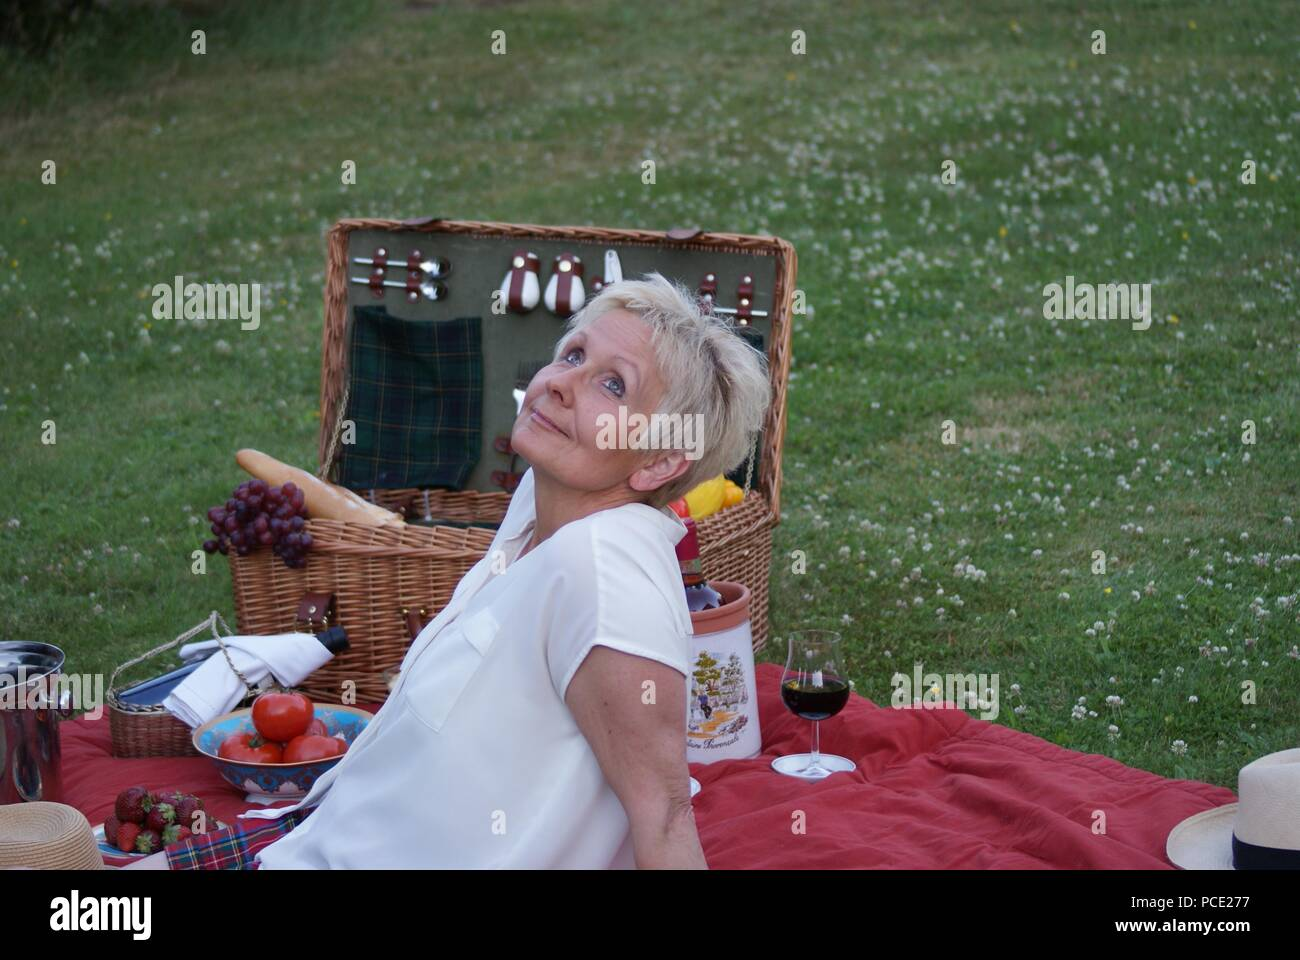 Picnic with fresh fruit, red wine and baguette, this blonde woman thinks fantastically Stock Photo